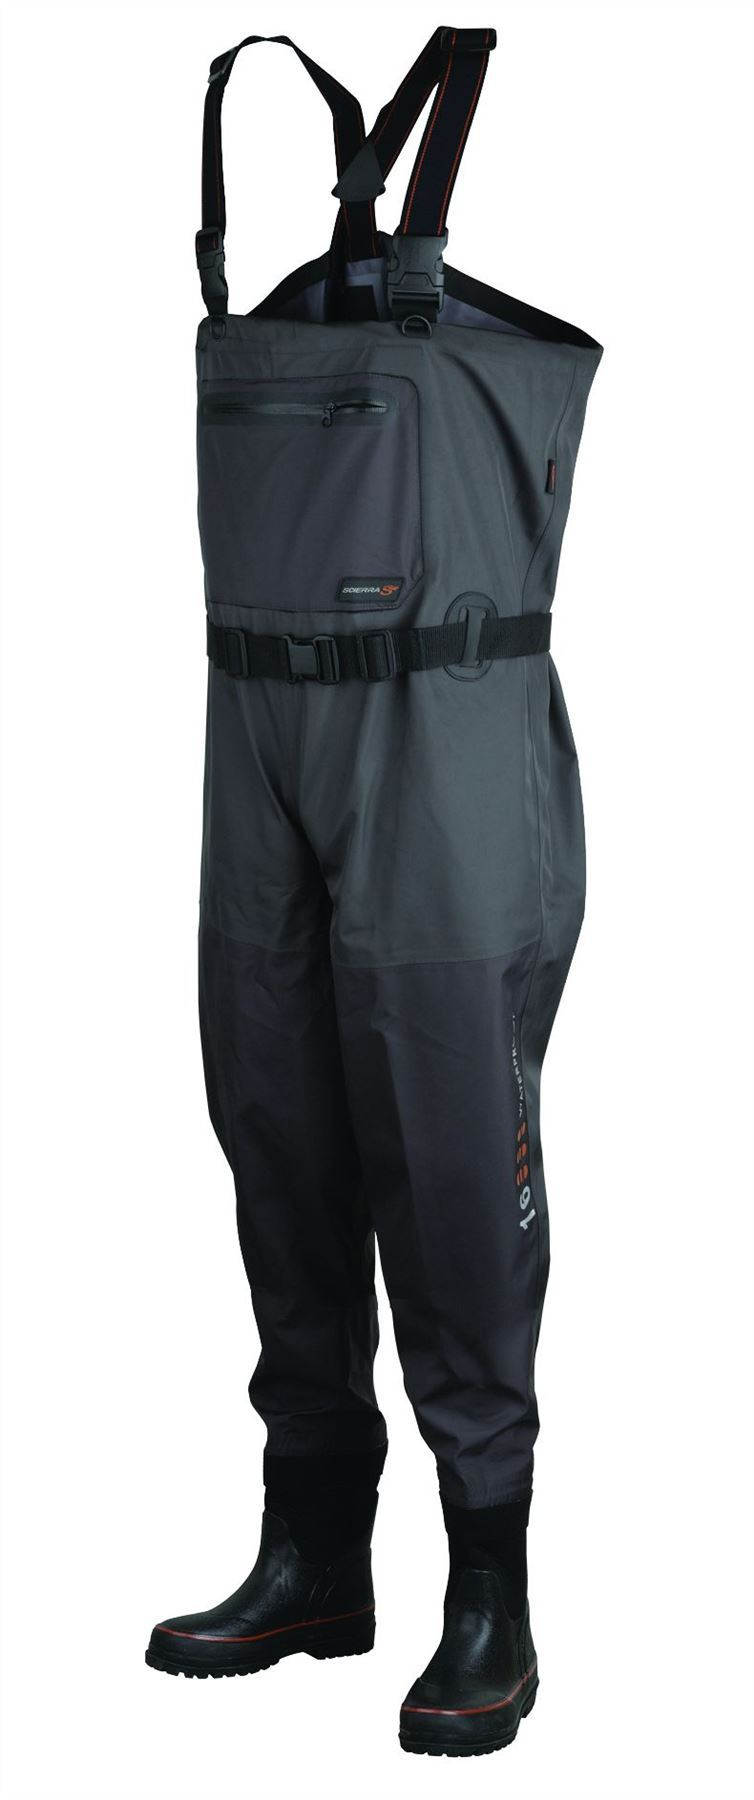 Scierra X-16000 Chest Wader Boot Foot Cleated - reid outdoors